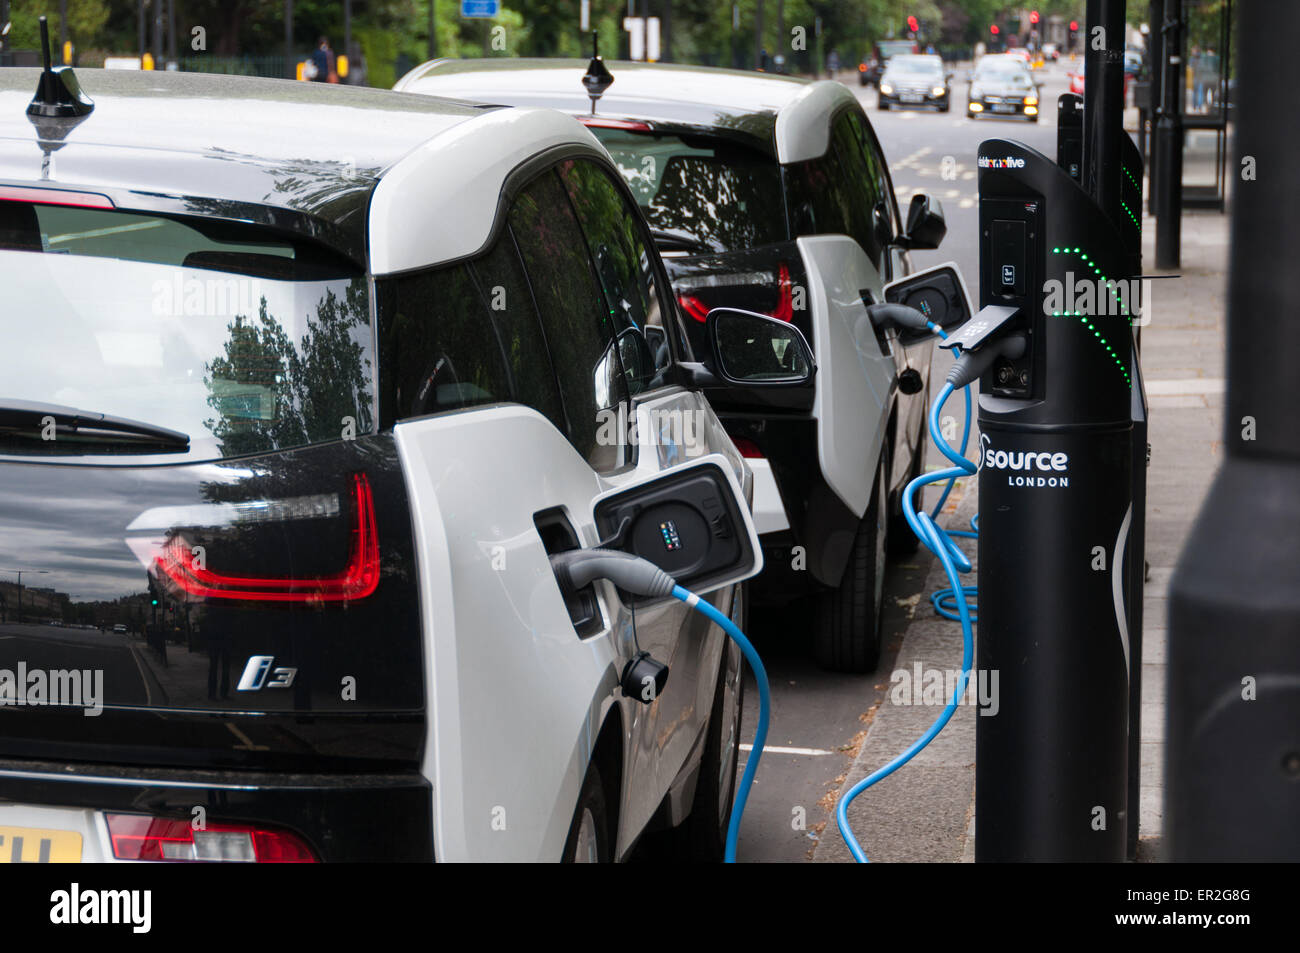 Electric BMW i3 cars plugged into electric charging bays in London, England Stock Photo